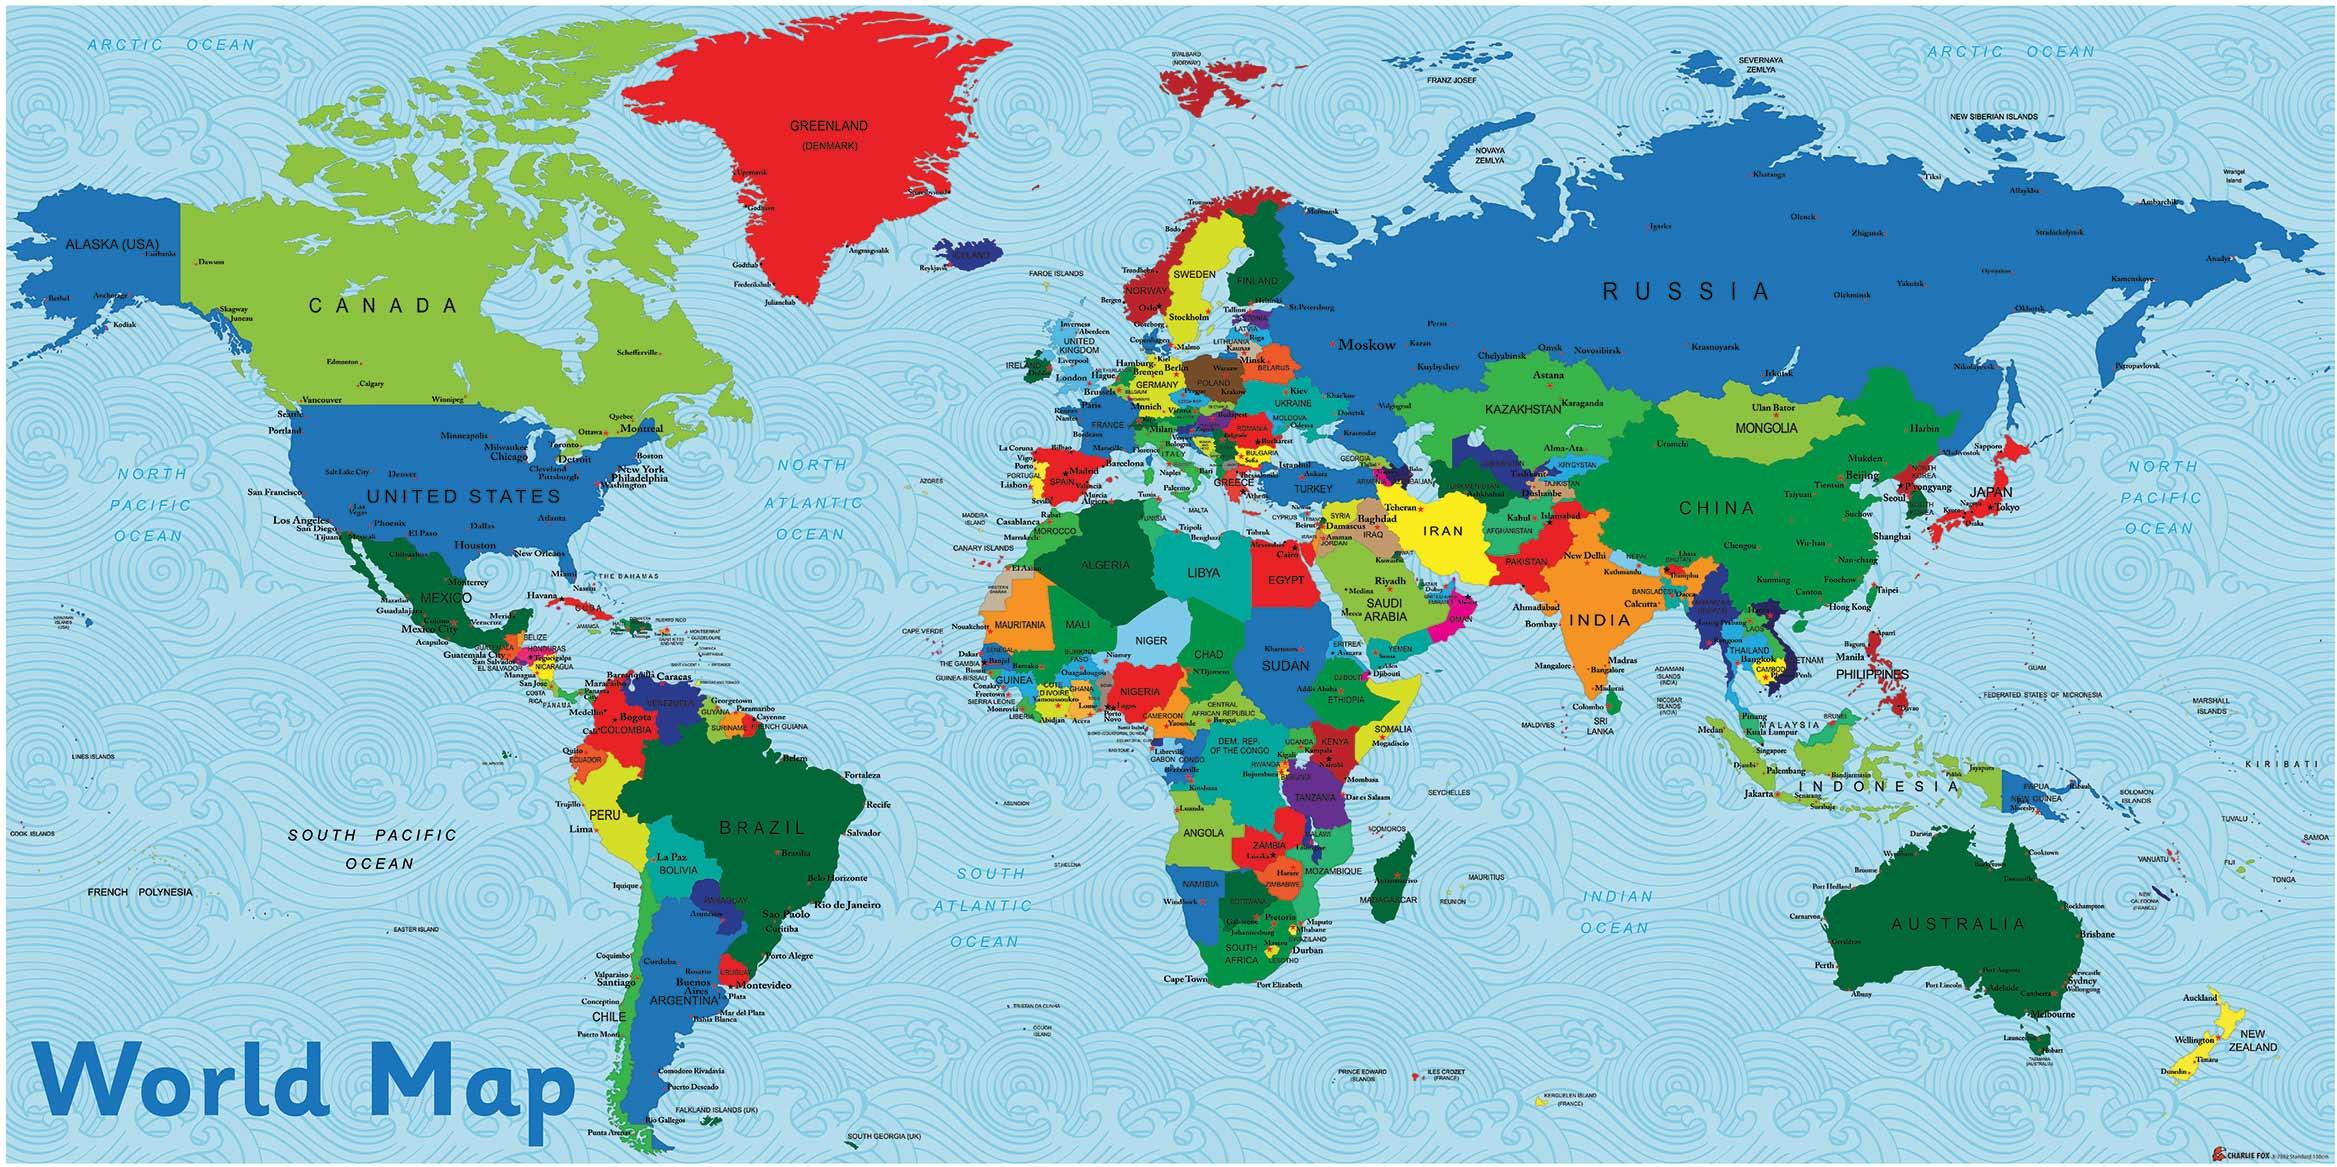 World map world map code x 7082 gumiabroncs Gallery